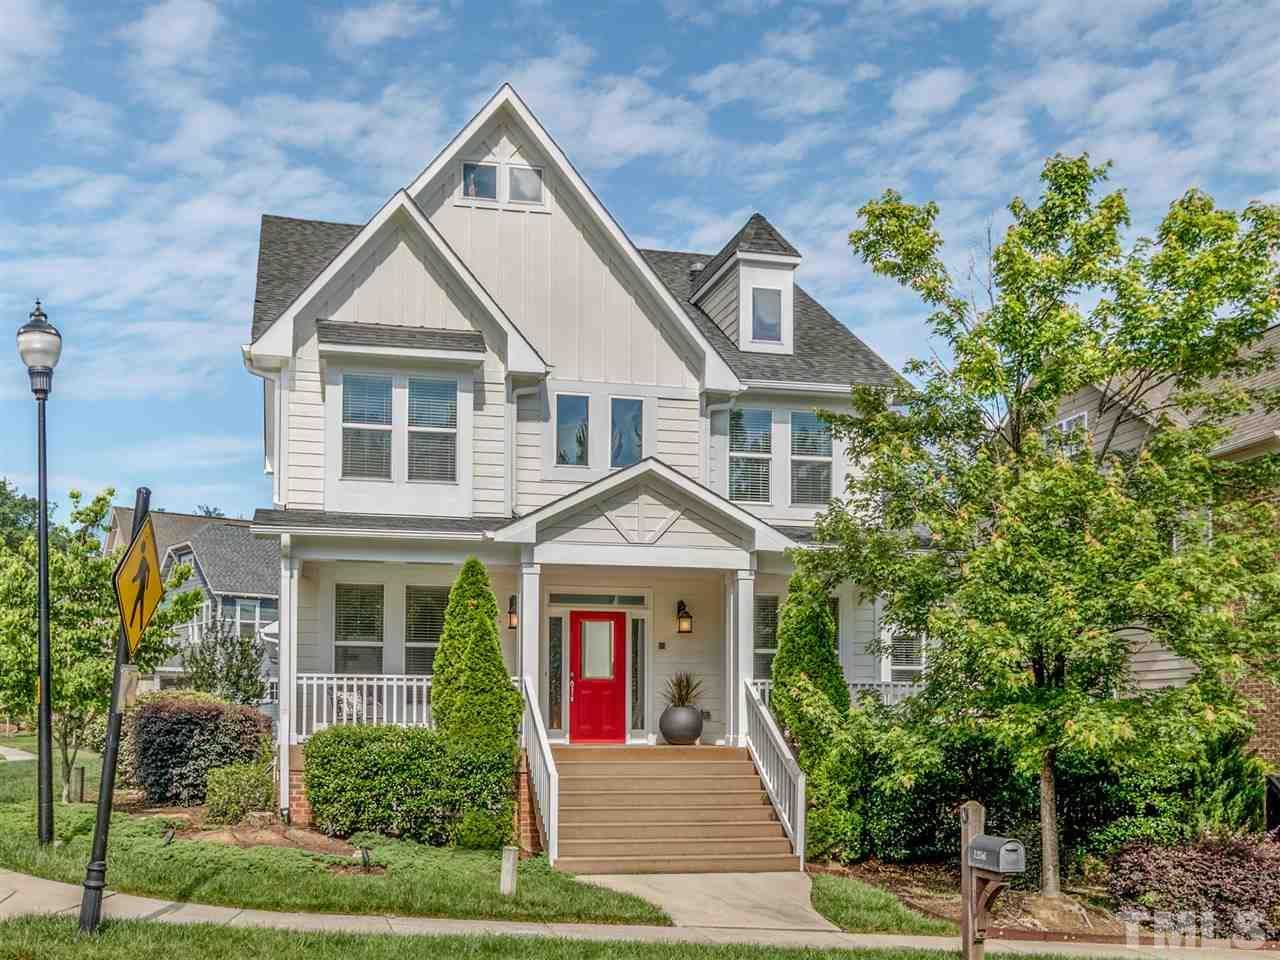 $439,000 - 4Br/4Ba -  for Sale in Briar Chapel, Chapel Hill